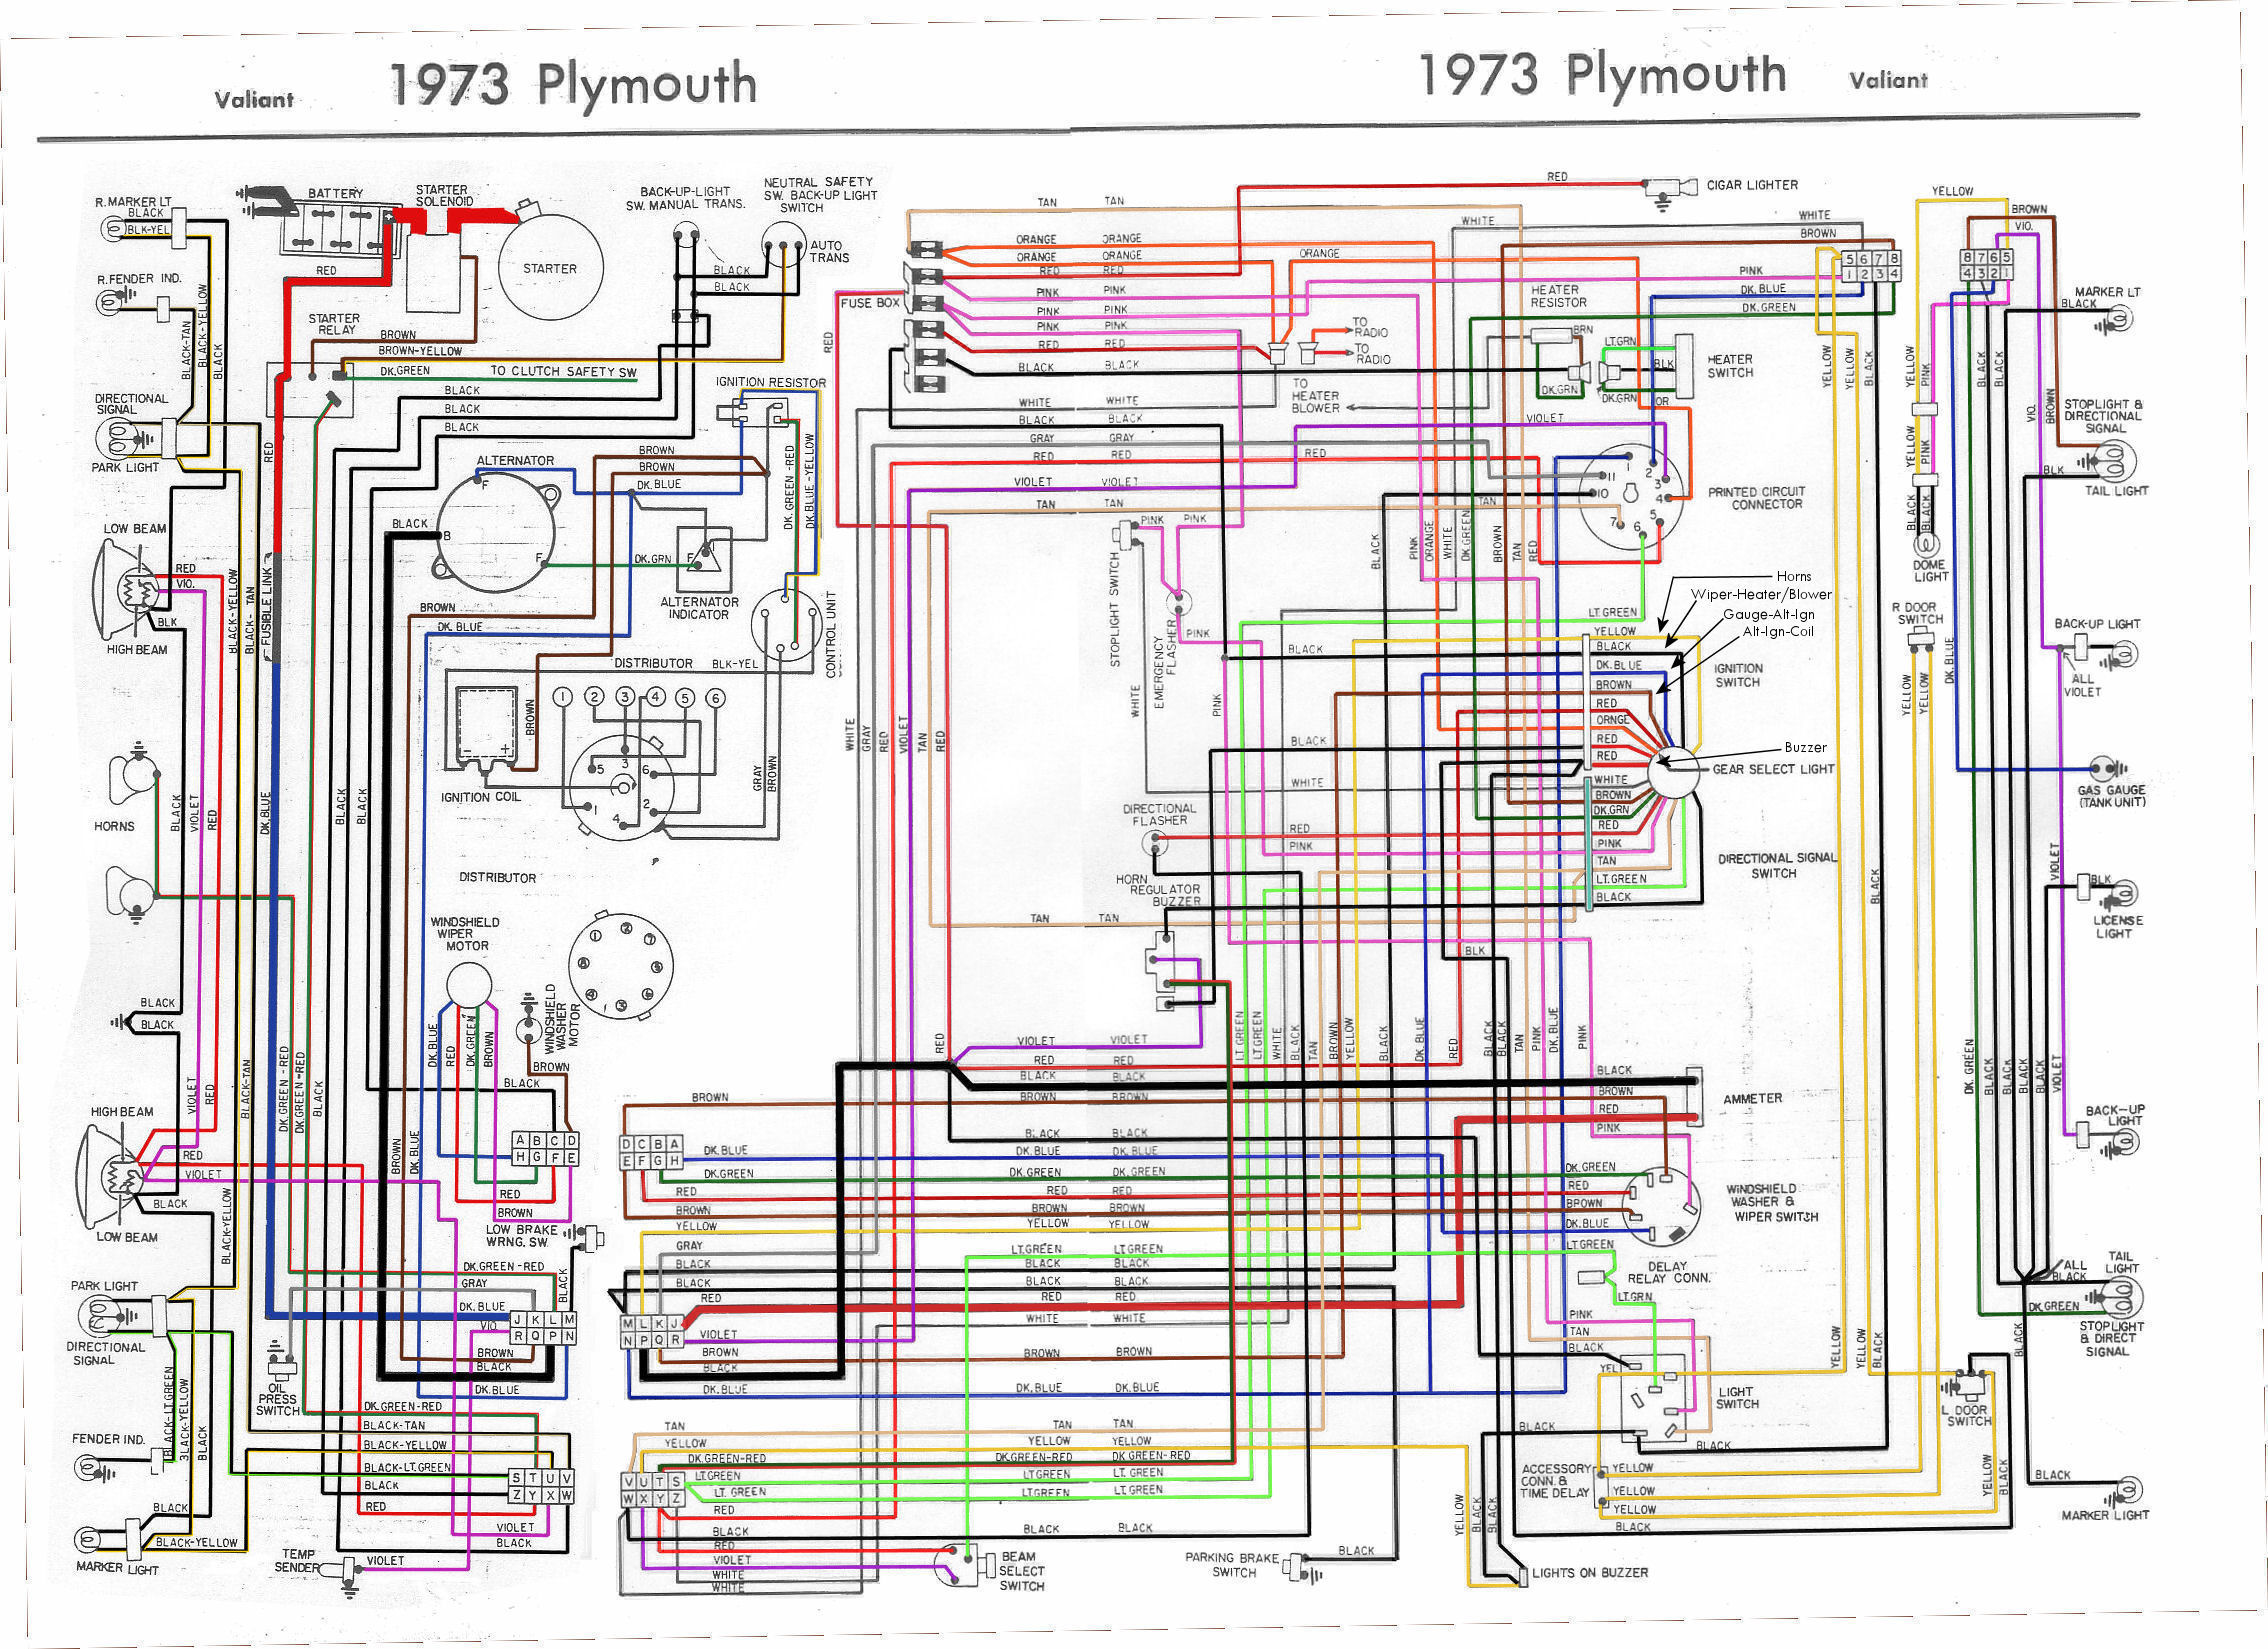 1971 cuda wiring diagram wiring diagrams mymopar wiring diagrams 1971 cuda wiring diagram 1 1969 barracuda wiring diagram 1971 gto wiring diagram My Mopar Wiring Diagram